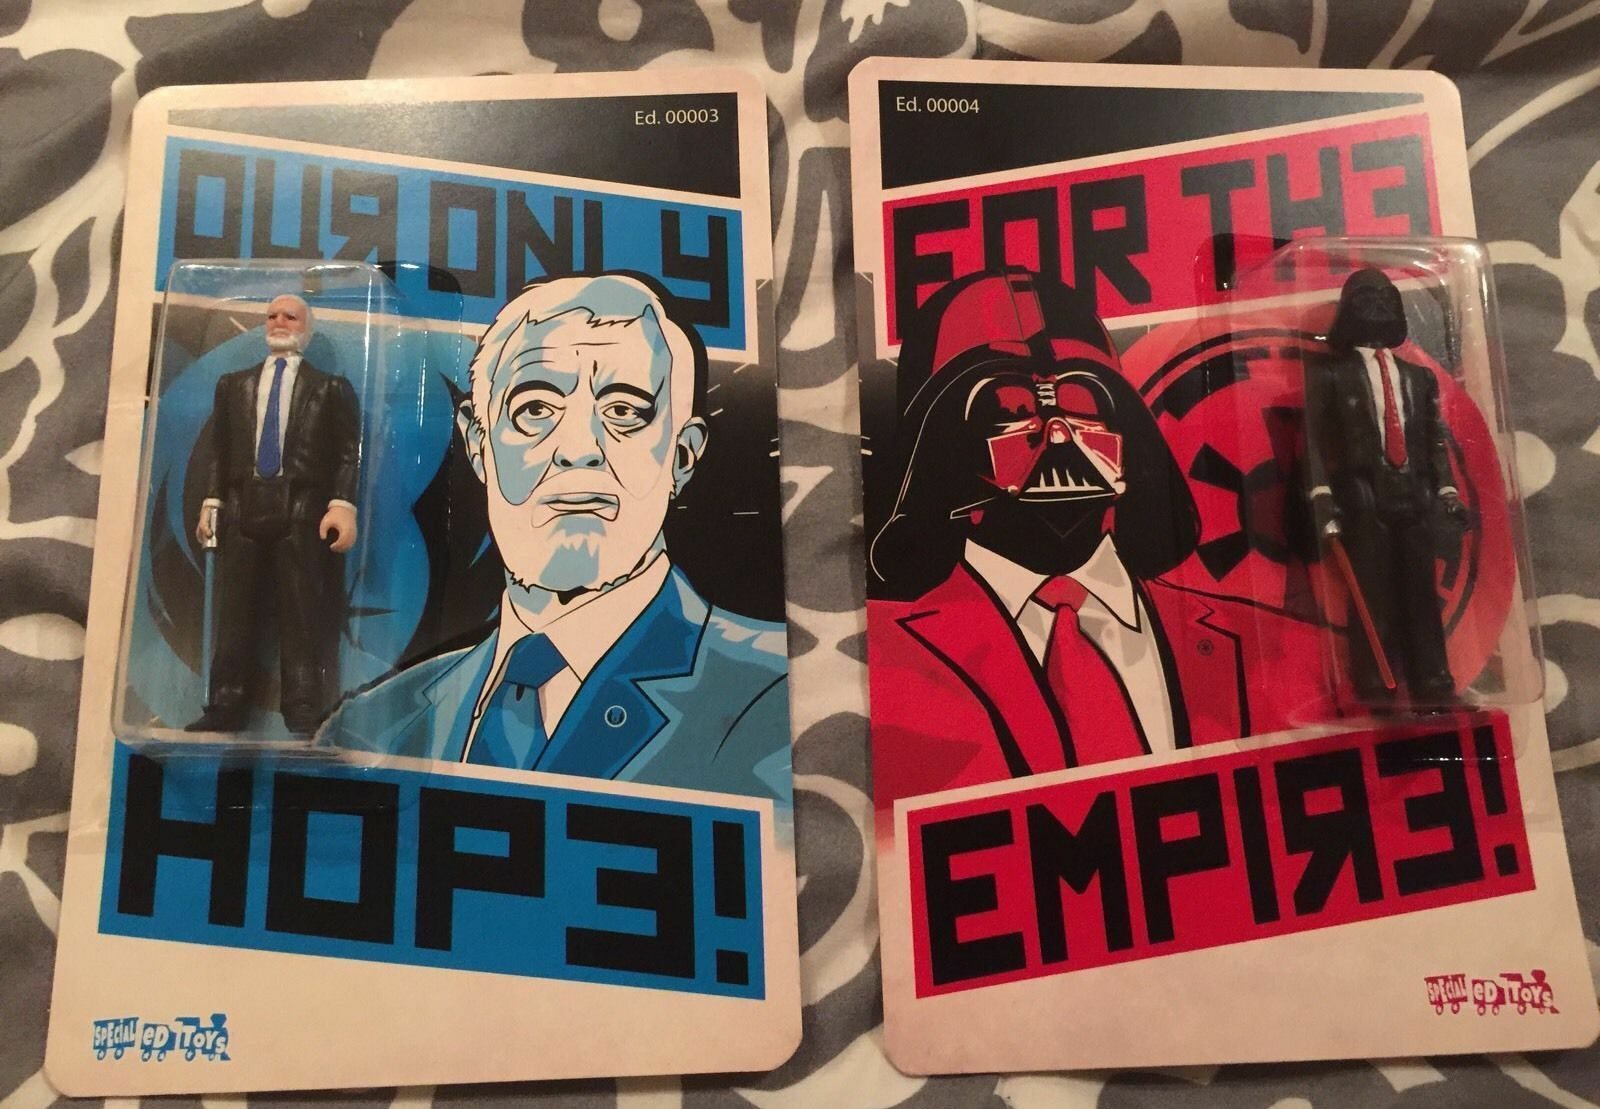 NYCC 2016 Exclusive DKE Our Only Hope For The Empire Set 15 20  Star Wars